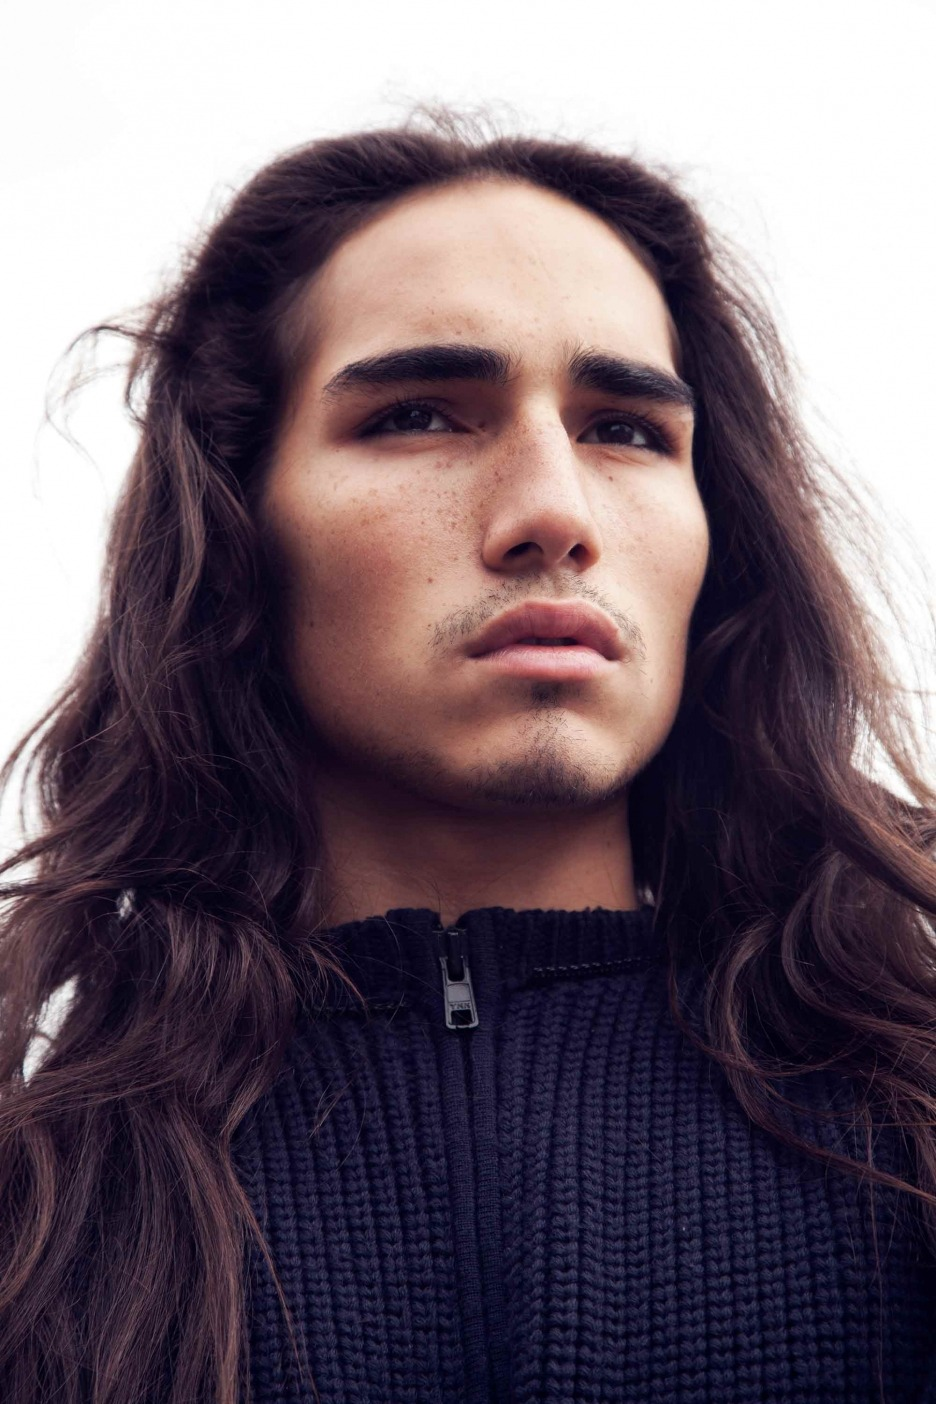 WILLY CARTIER HAVE MY BABY